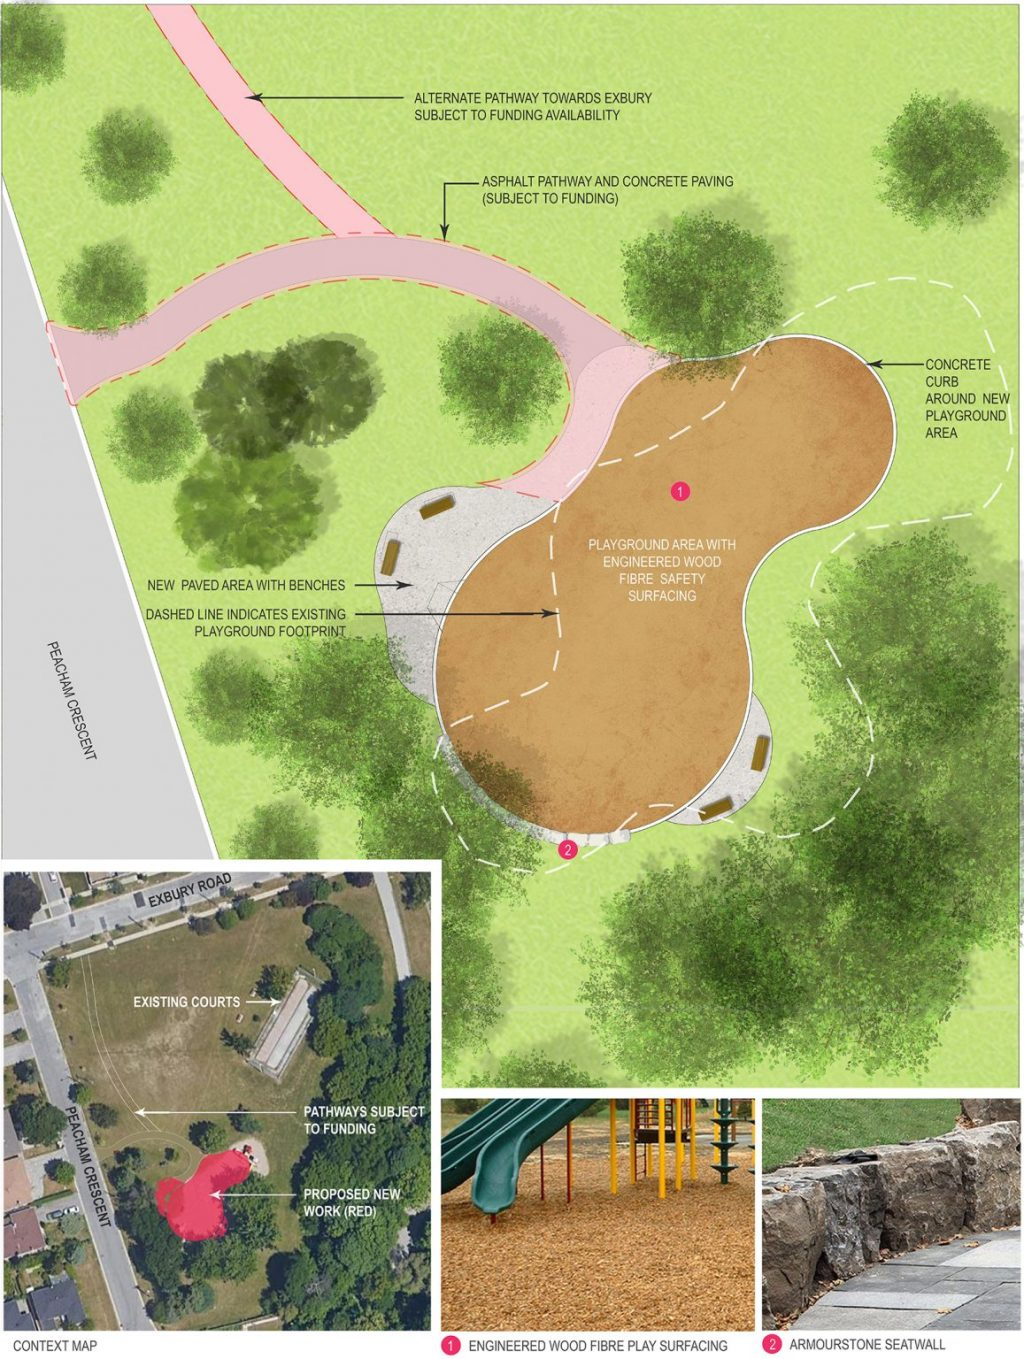 The Layout changes proposed include a new accessible asphalt pathway, and concrete paving, subject to funding, a slightly adjusted playground area on wood fibre safety surfacing, and a new paved area with benches.